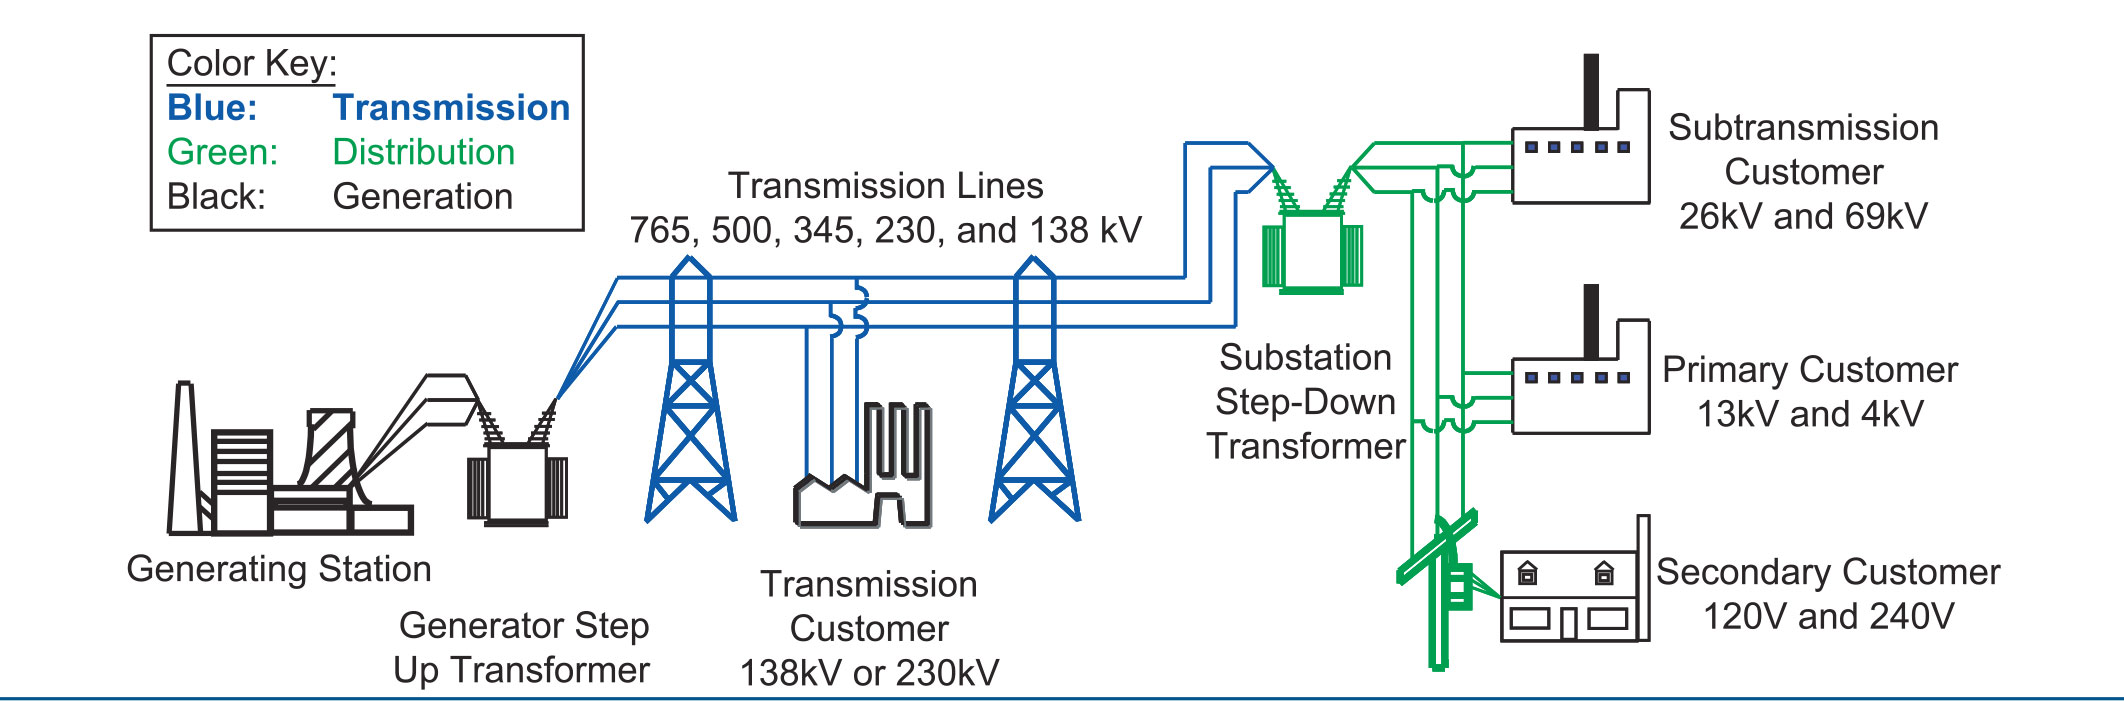 usa power transformer wiring diagram wiring library Isolation Transformer Wiring Diagram electric grid in north america diagram electrical